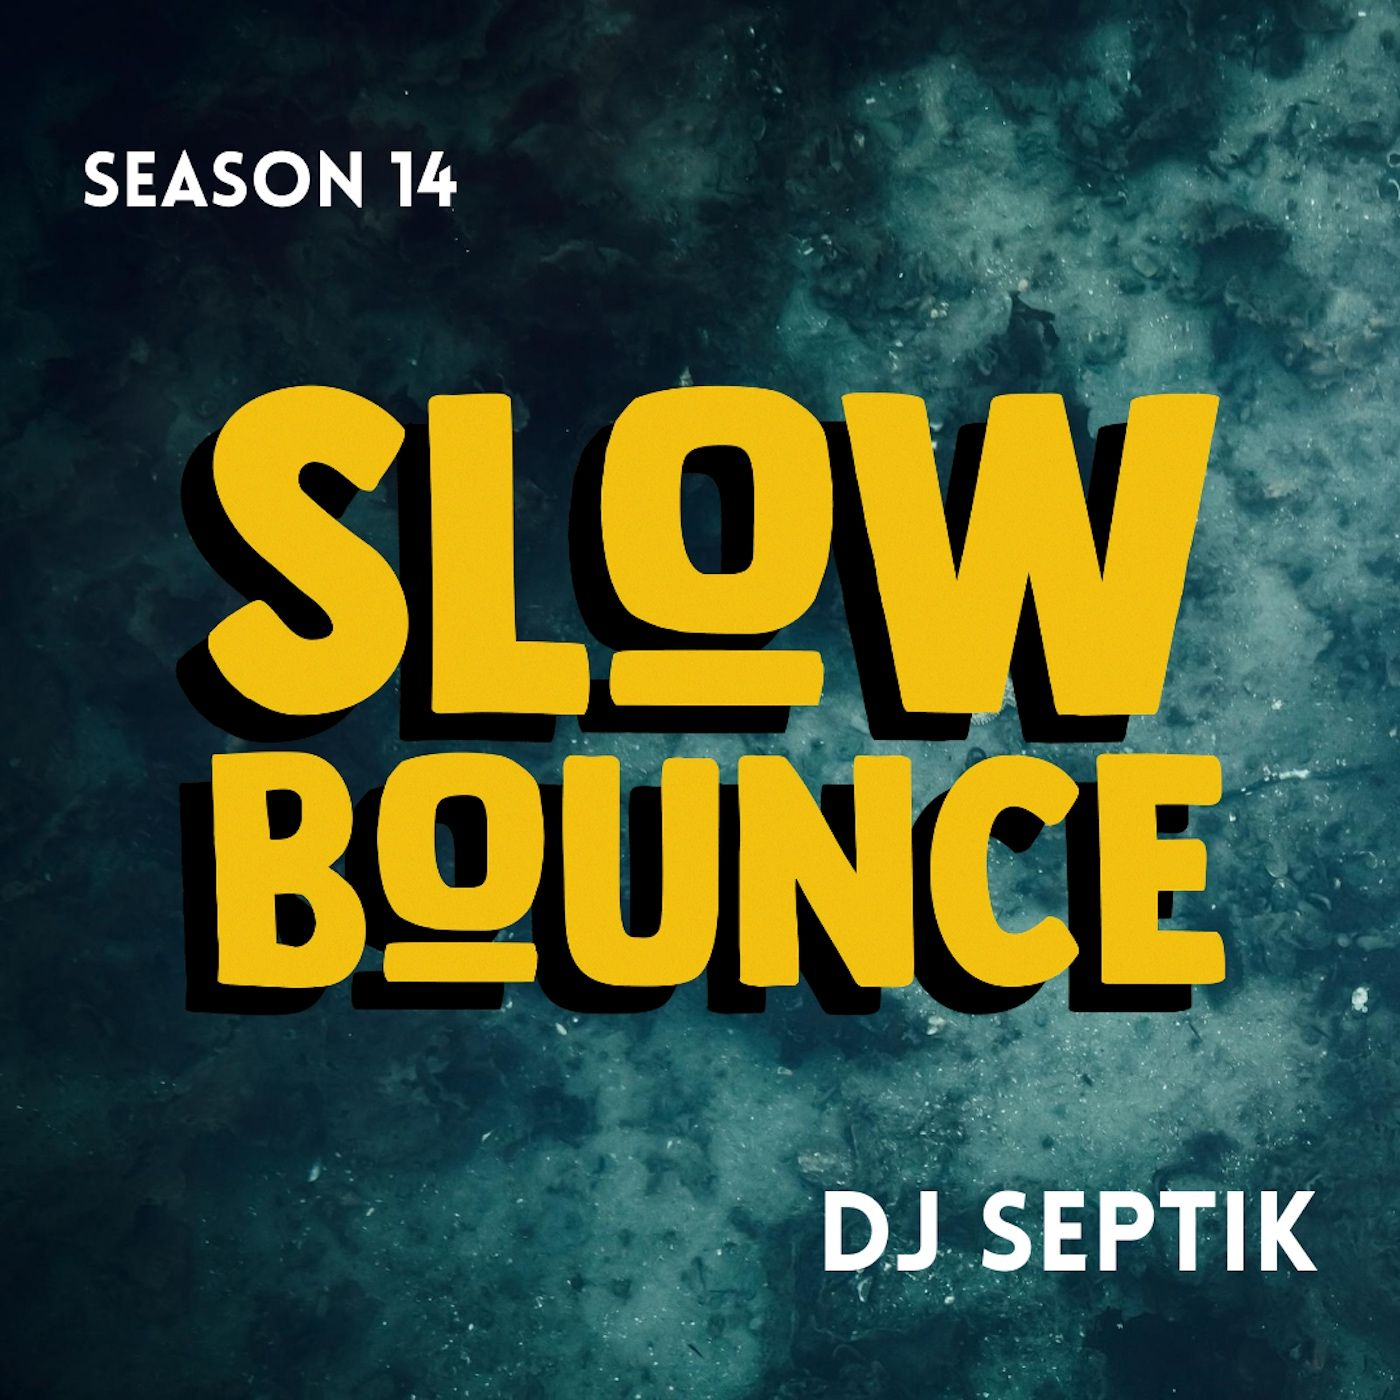 Bigupradio.com SLOWBOUNCE - Tropical Bass Podcast